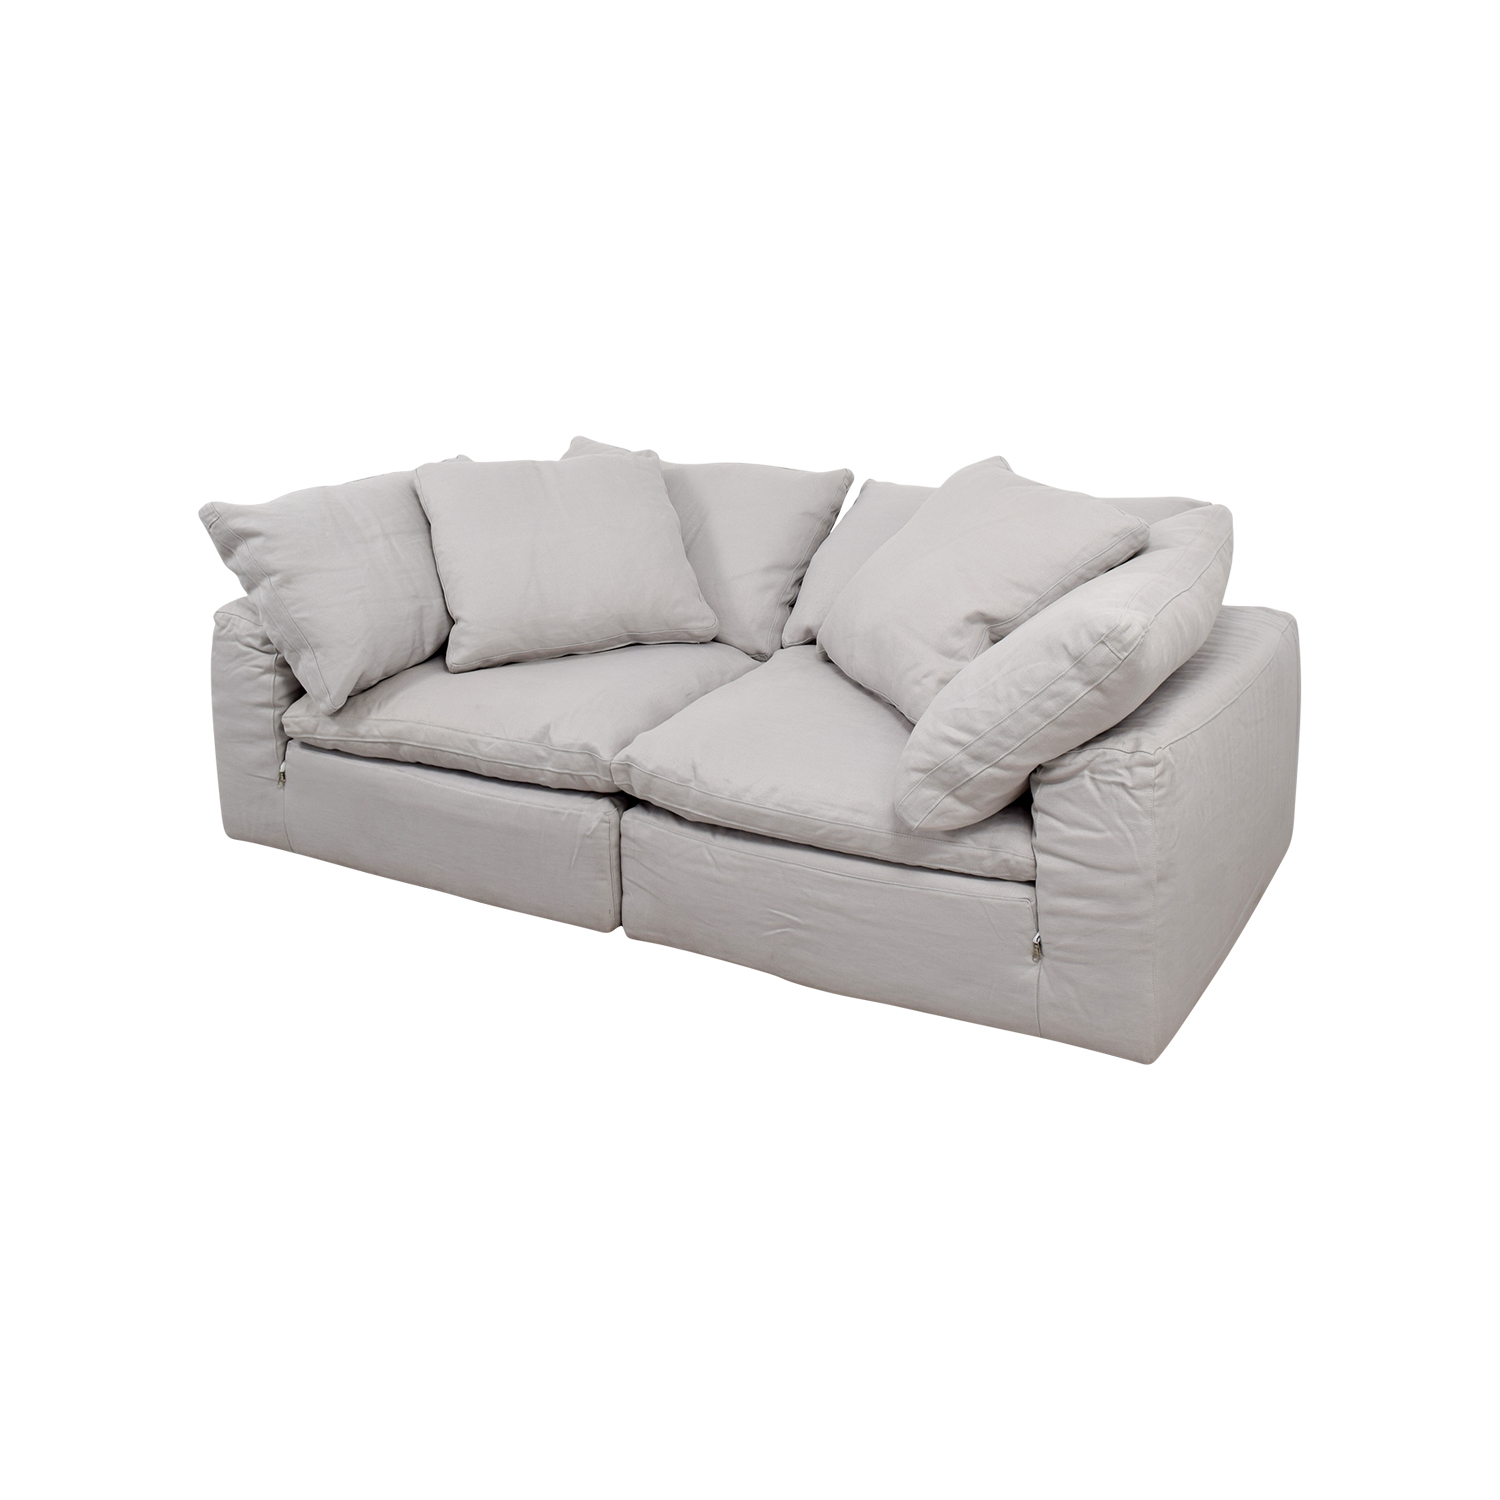 Restoration Hardware The Cloud White Sofa For